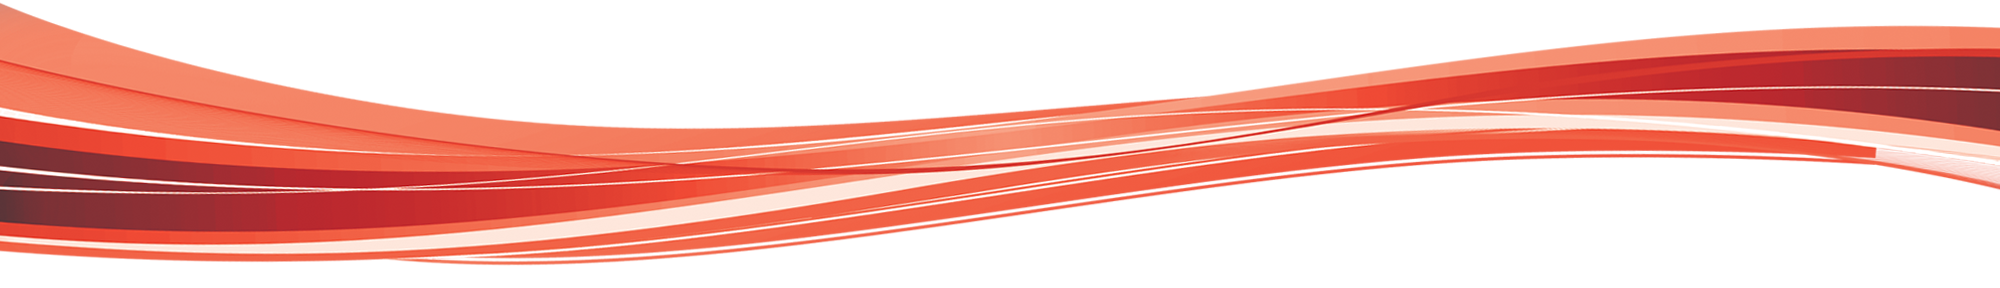 red waves png #90484805